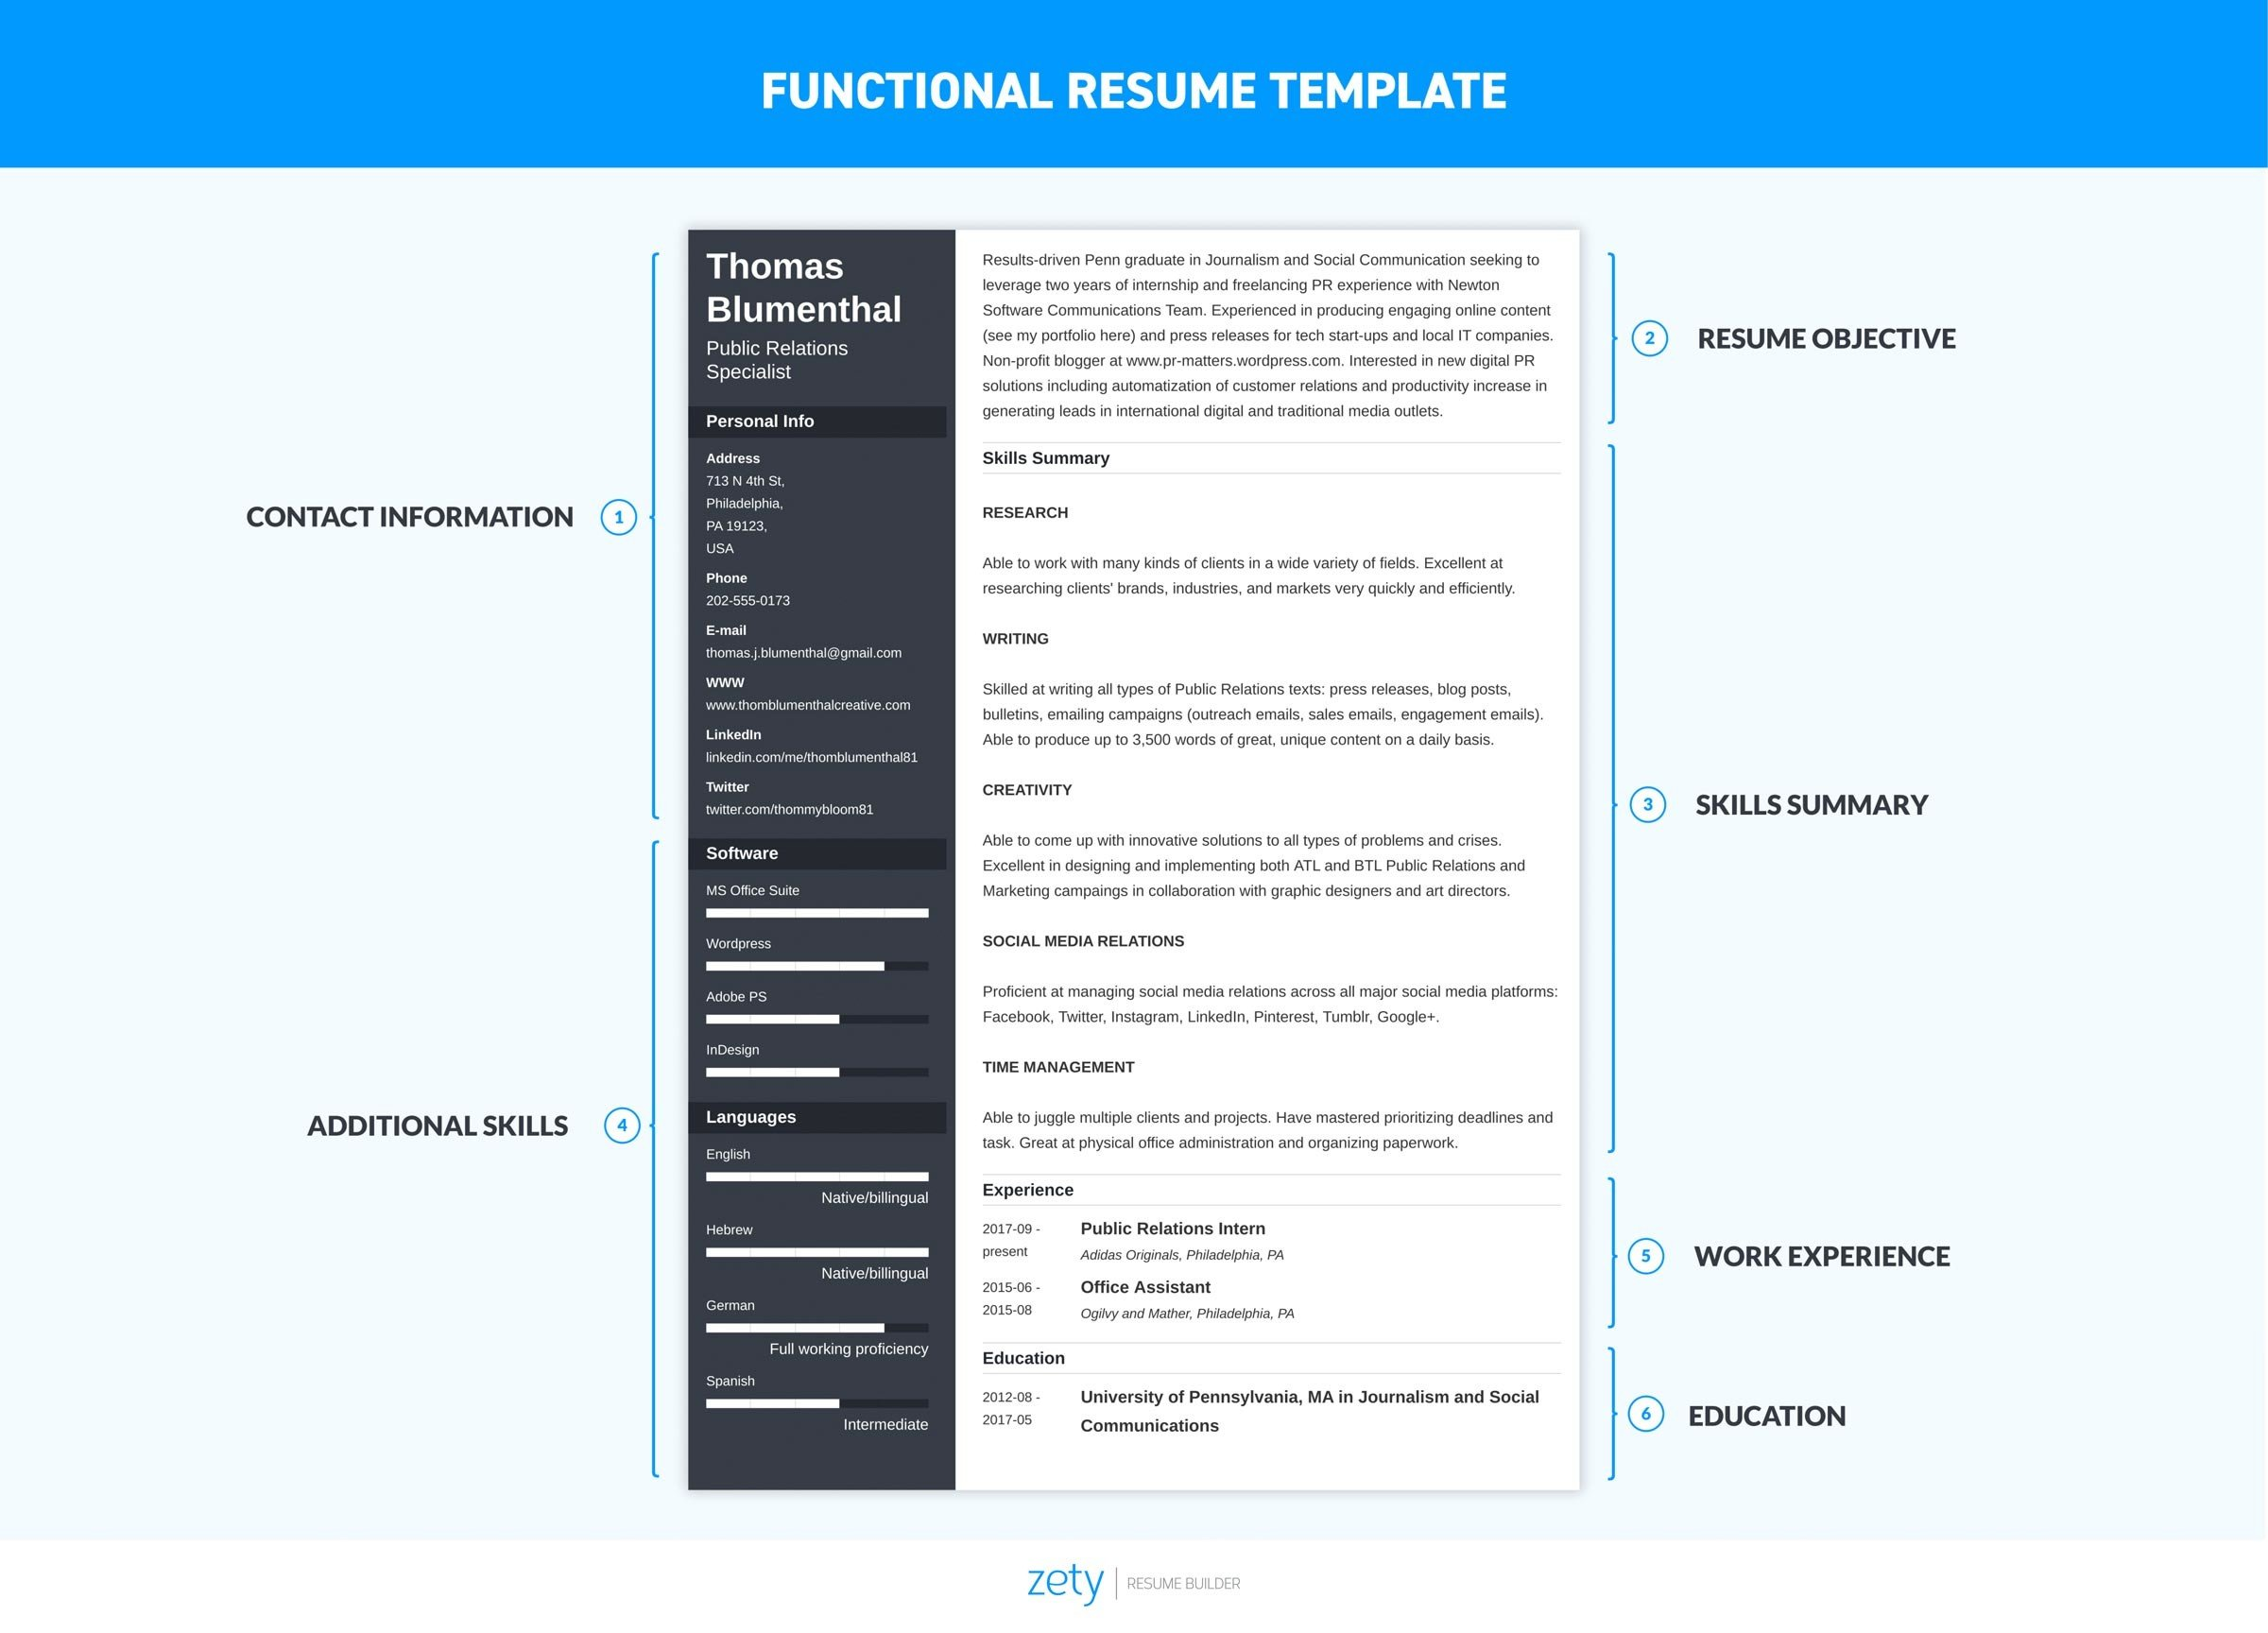 functional resume examples skills based templates core template word service phoenix Resume Core Functional Resume Template Word